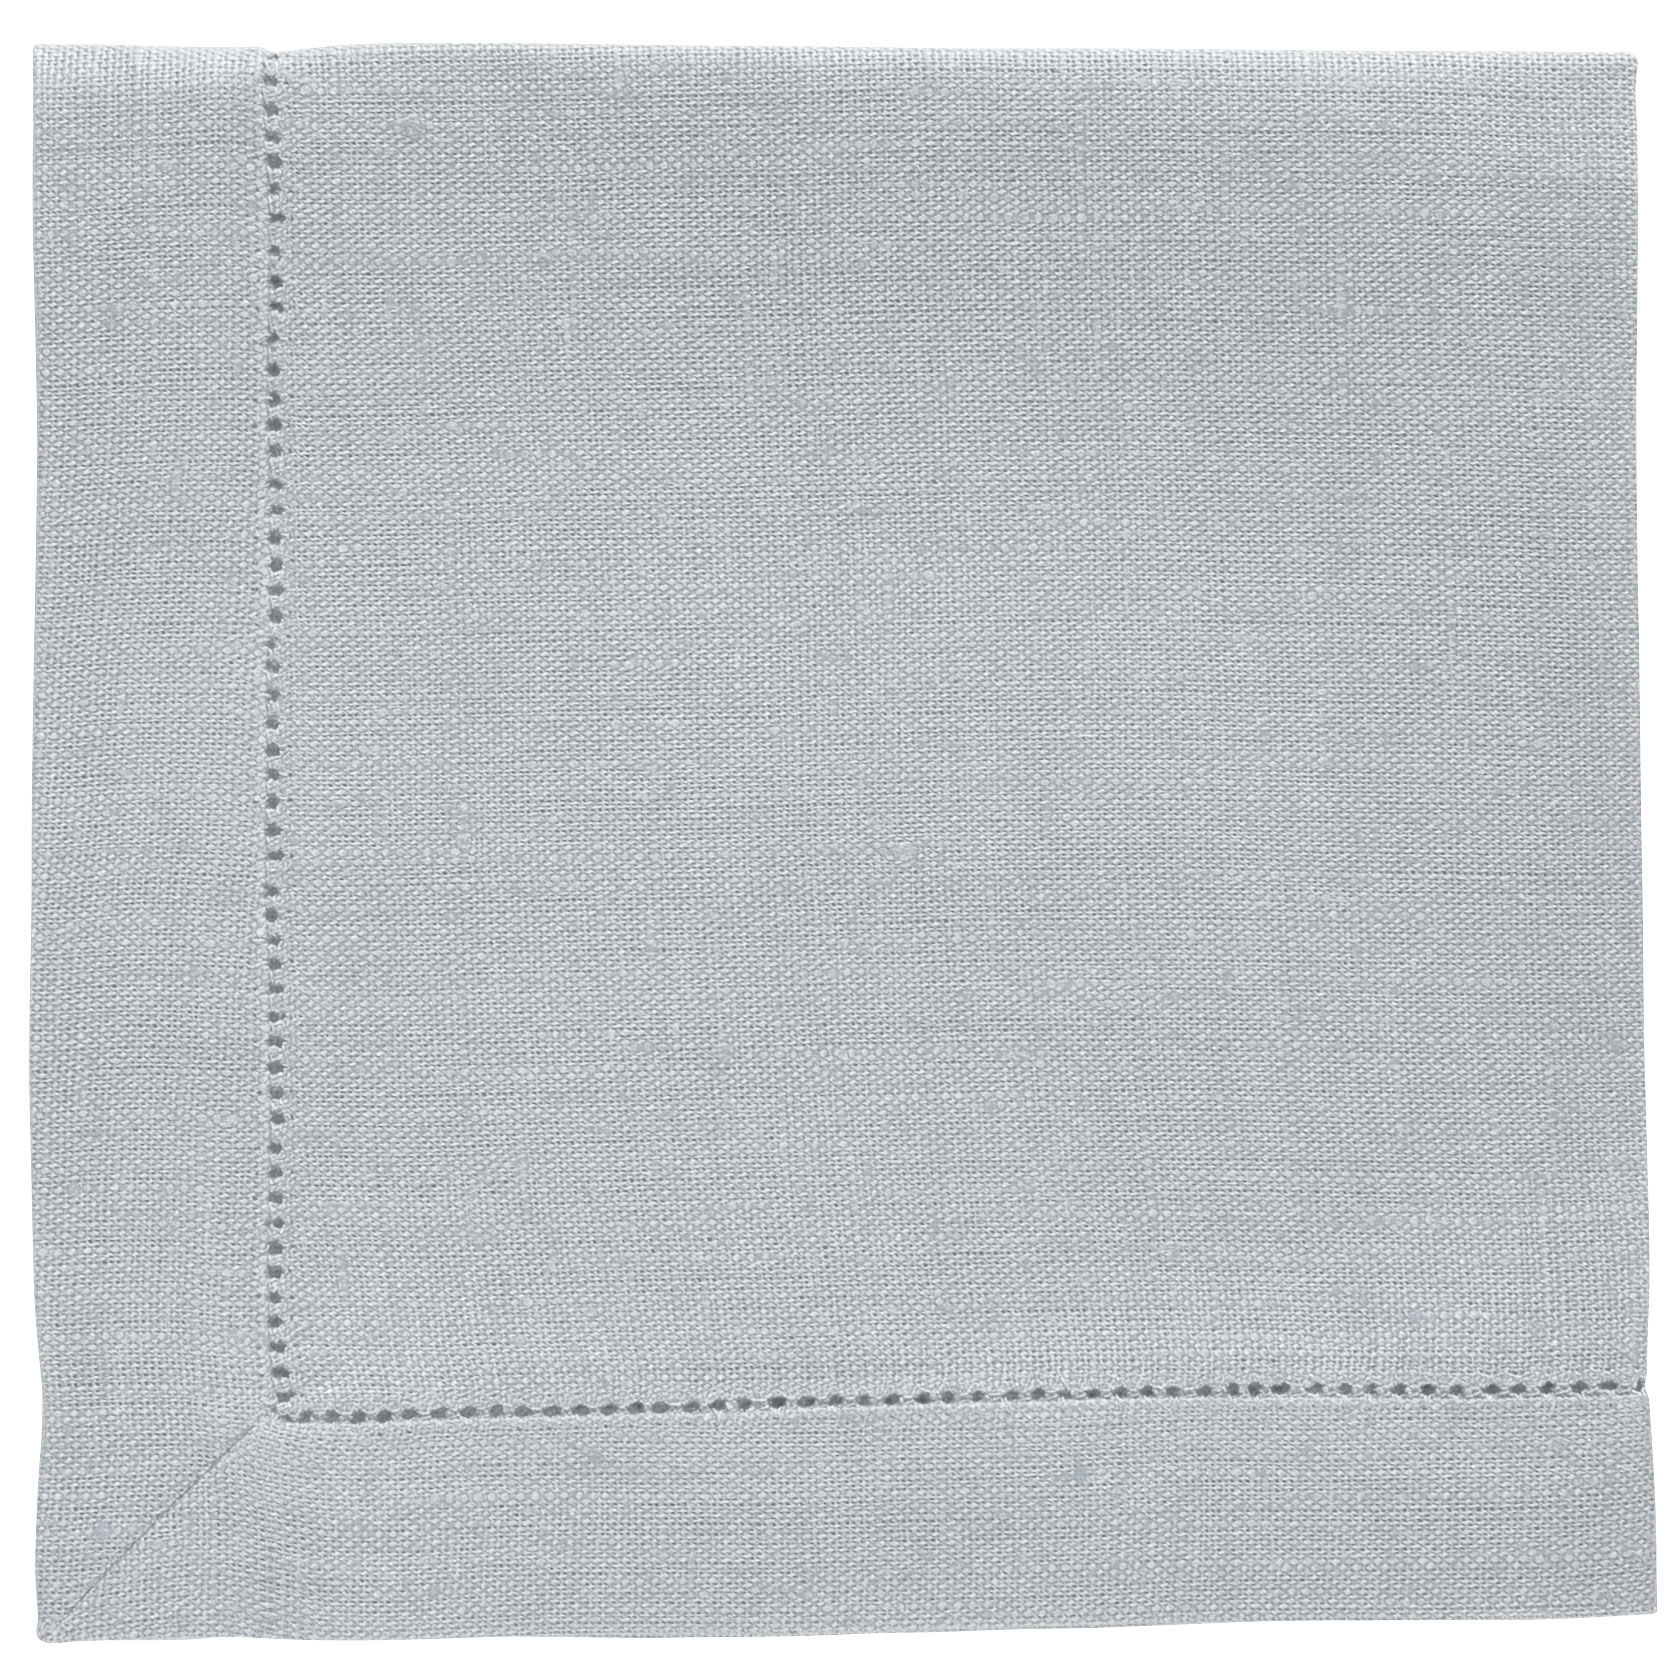 NAPKIN <br />light gray